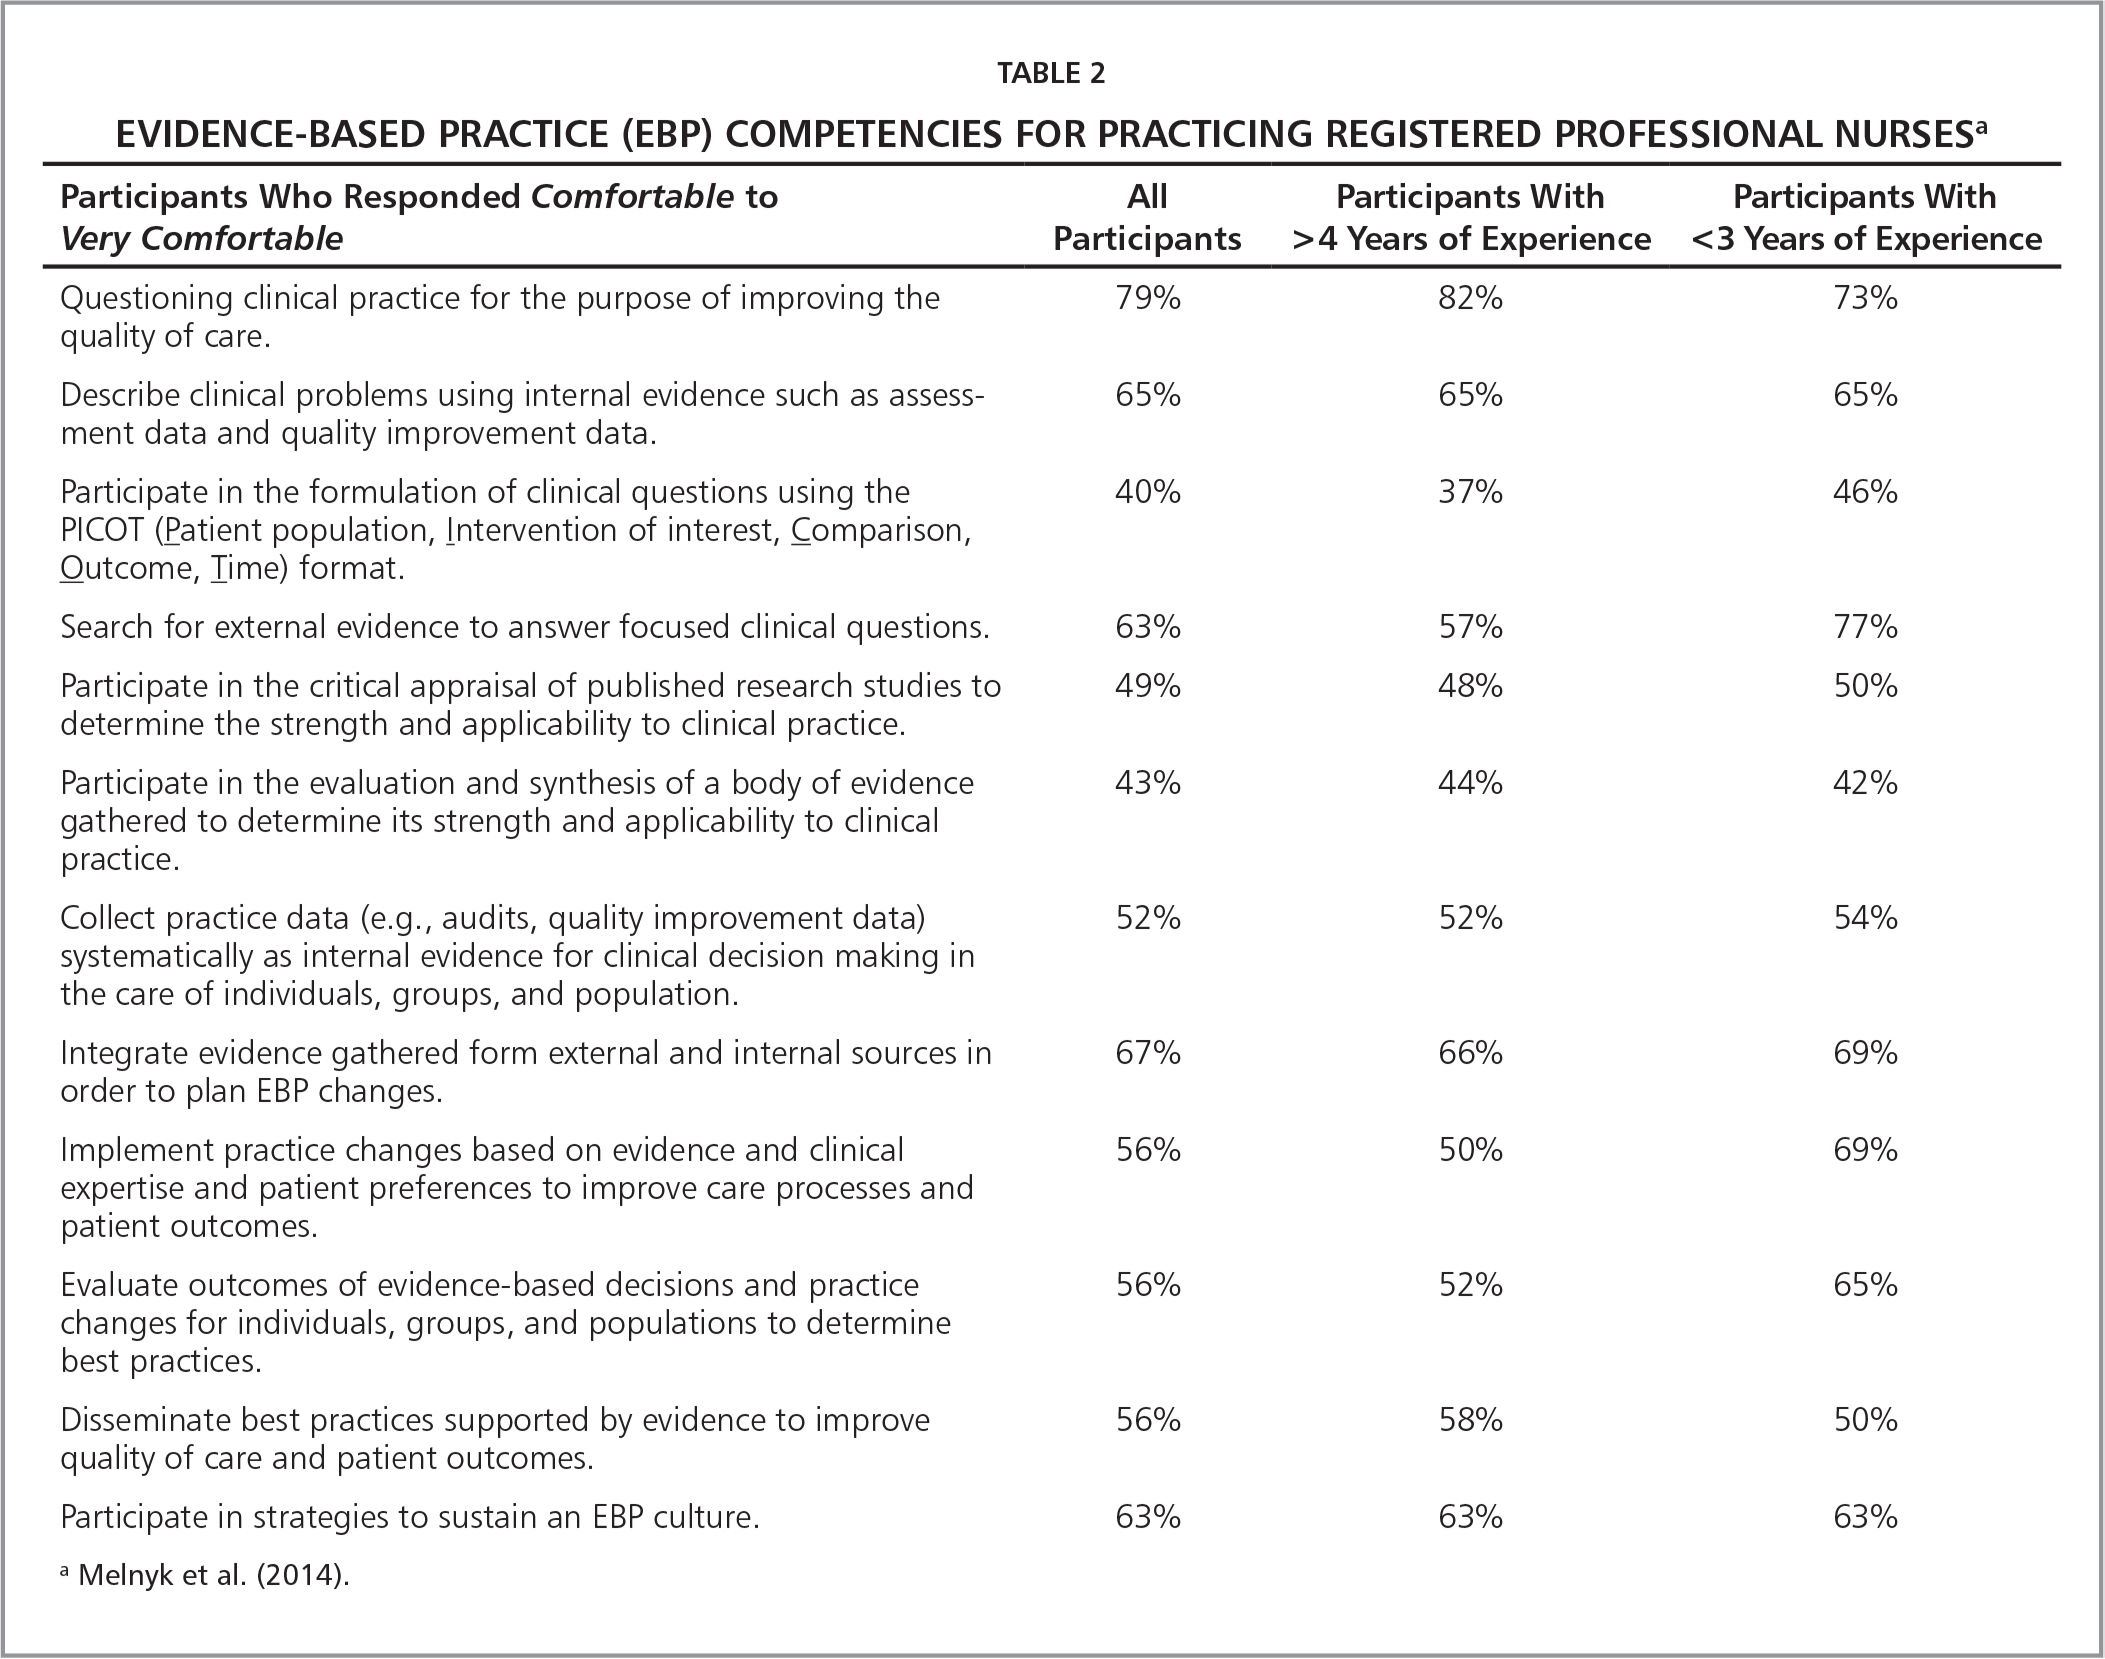 Evidence-Based Practice (EBP) Competencies for Practicing Registered Professional Nursesa